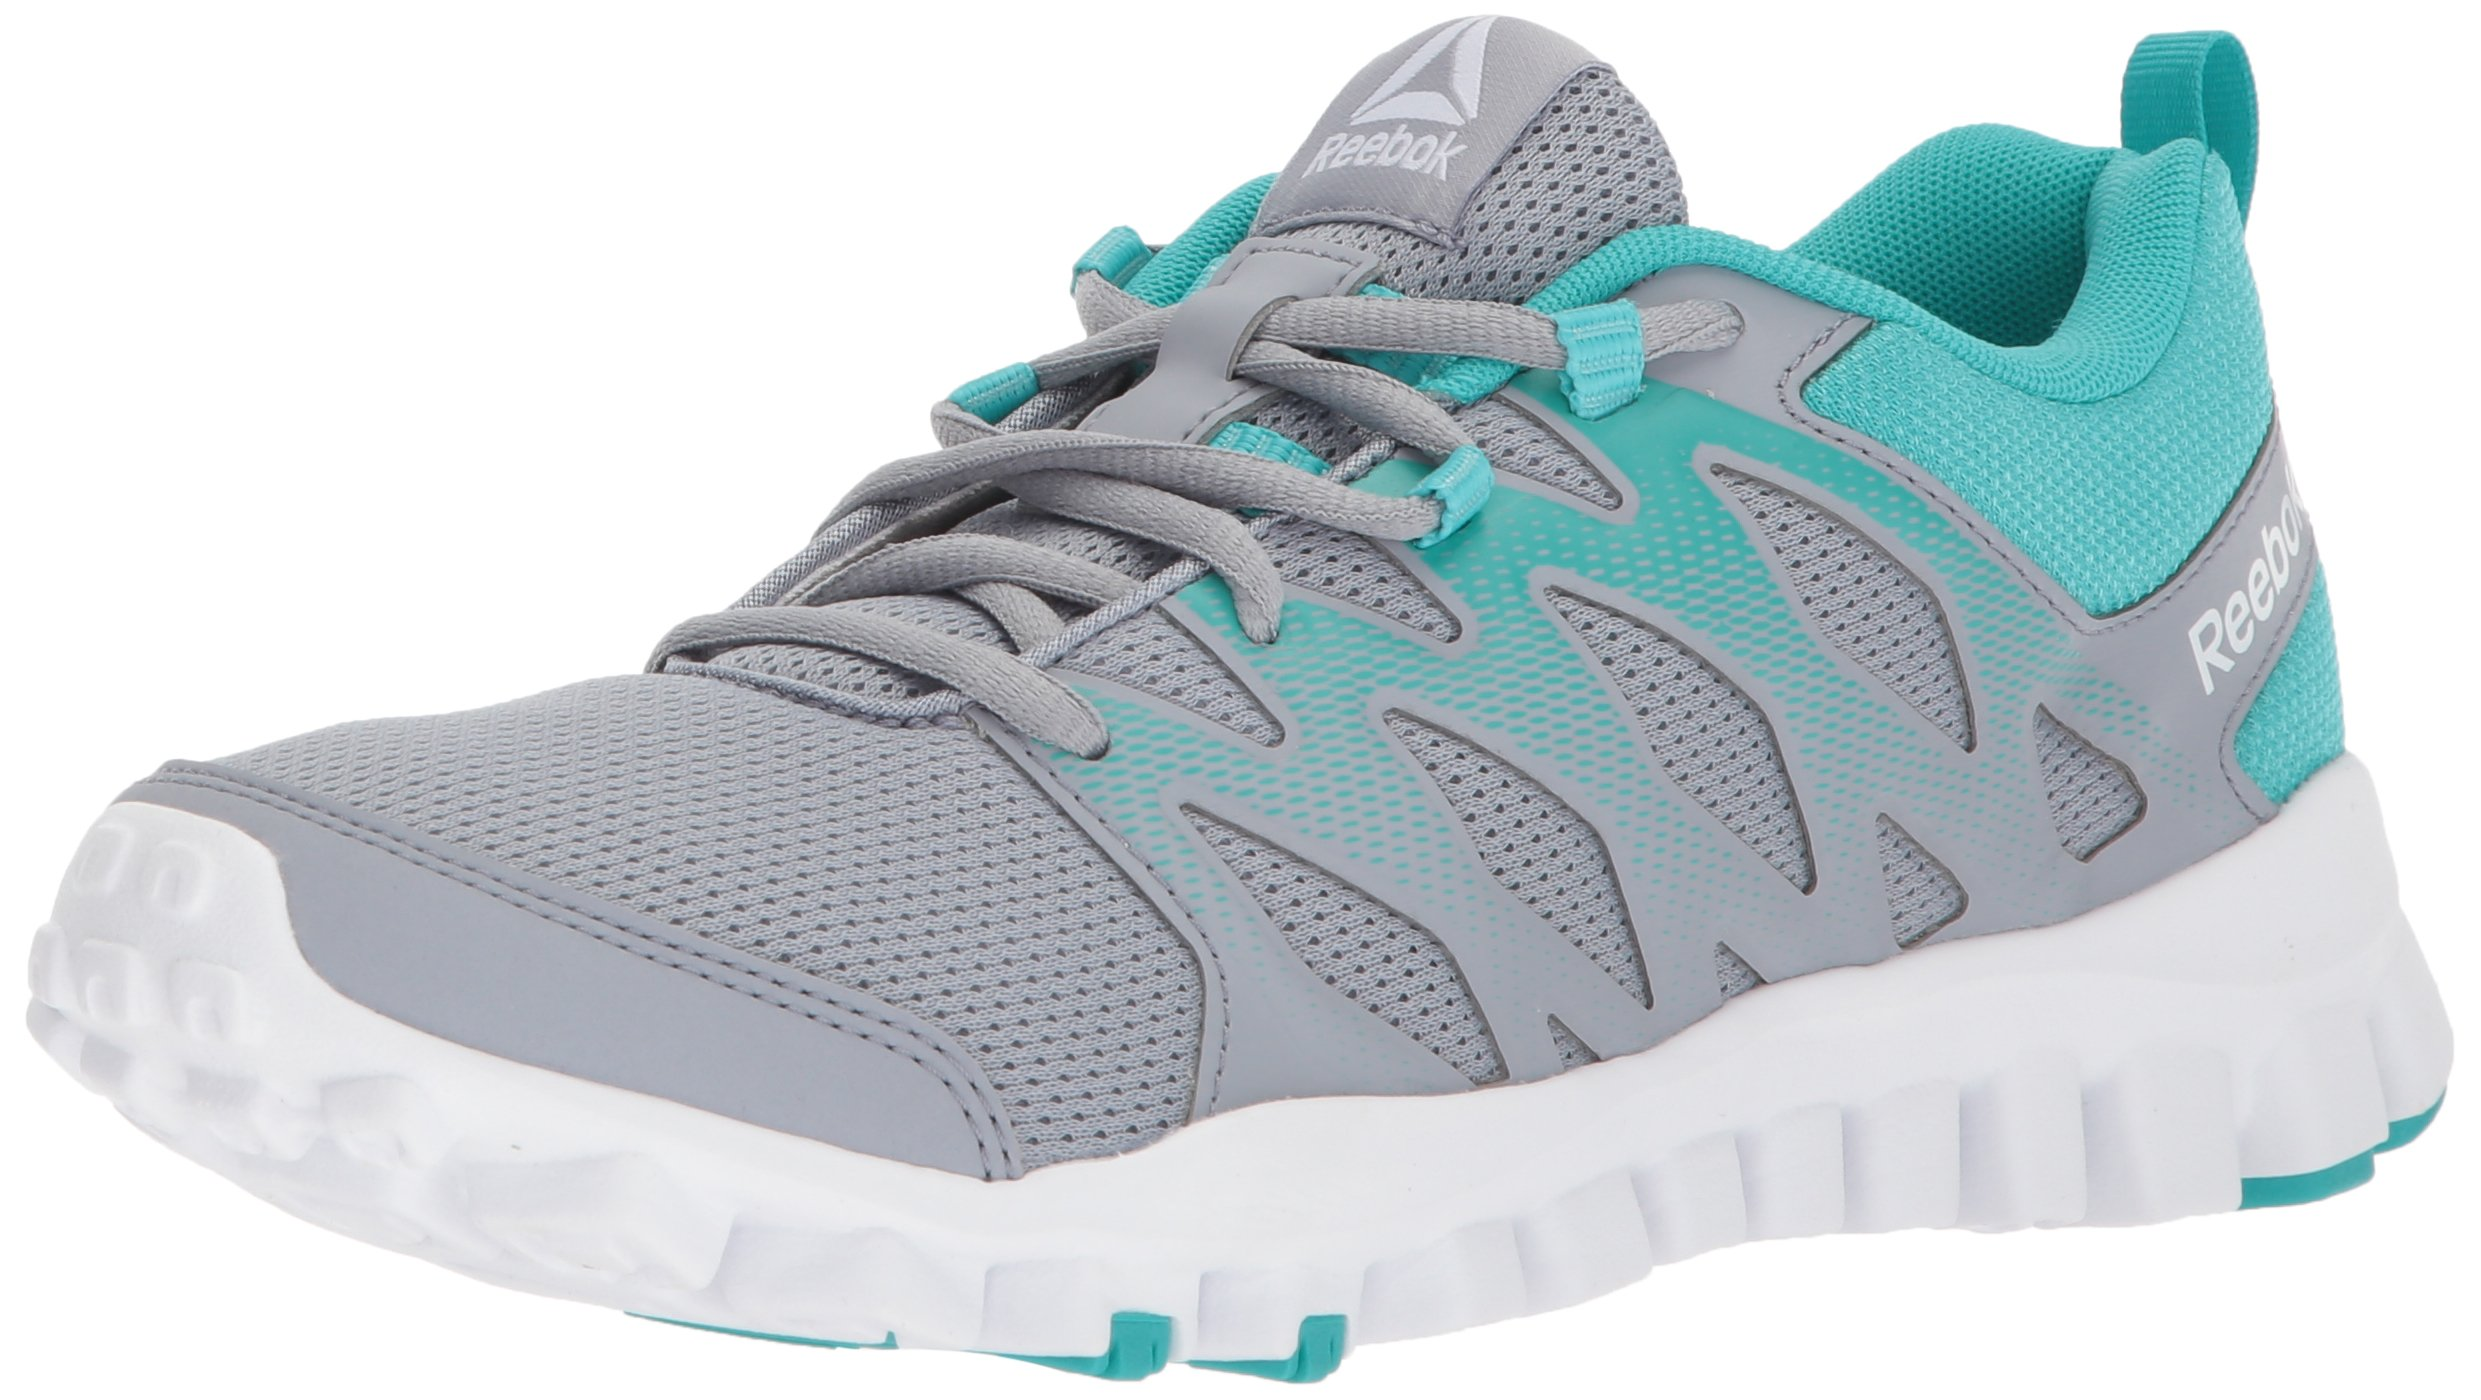 Reebok Women's Realflex Train 4.0 Cross Trainer, Cool Shadow/Solid Teal/White, 5.5 M US